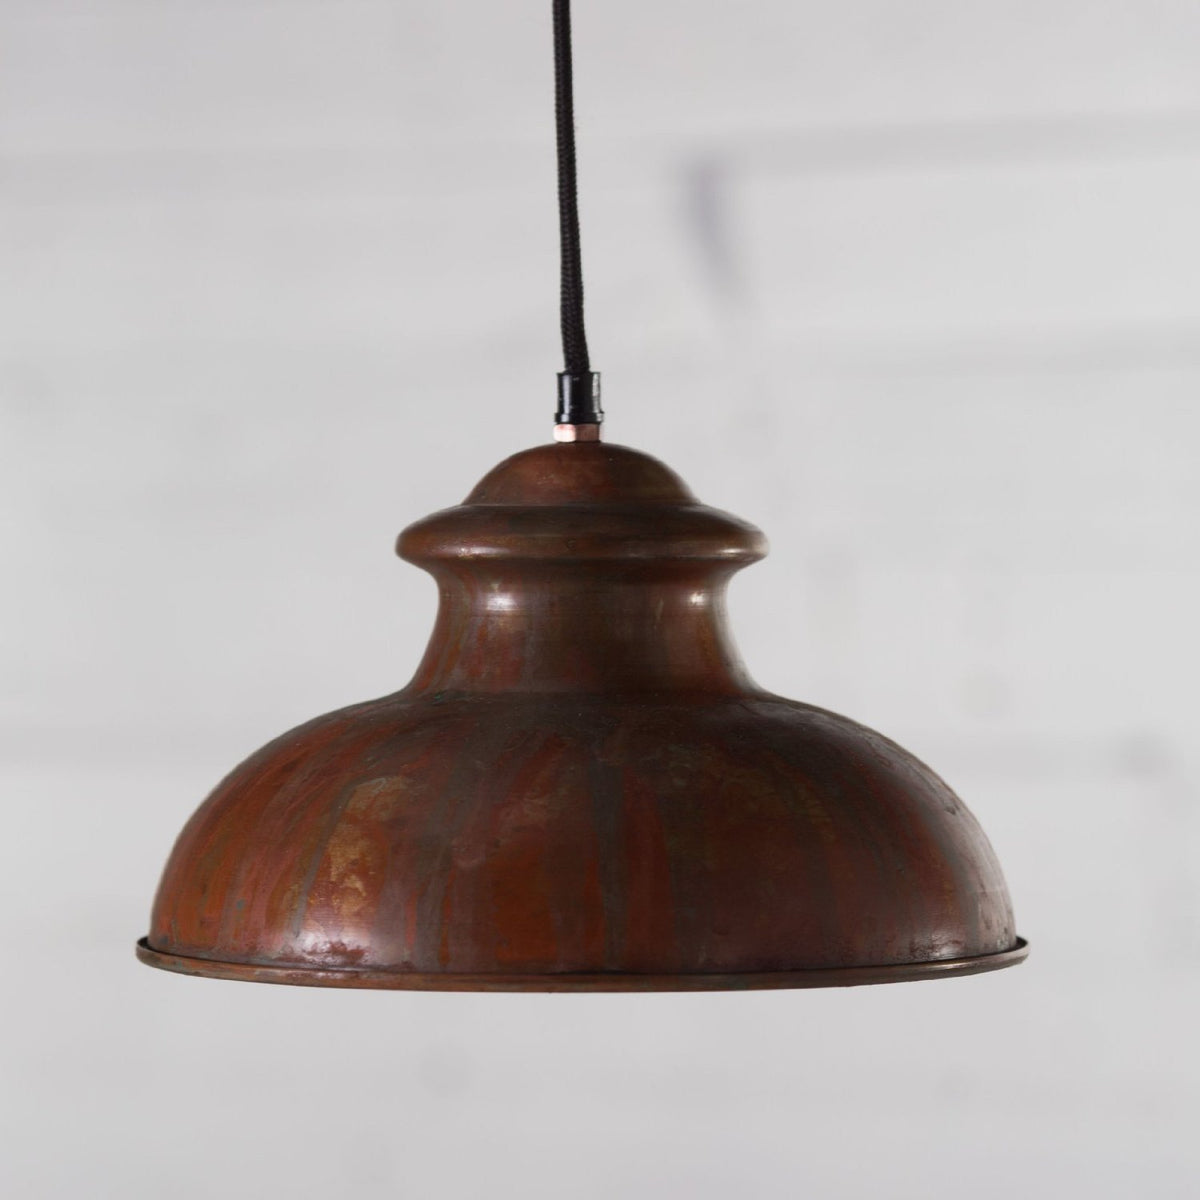 Kalalou Antique Rustic Pendant